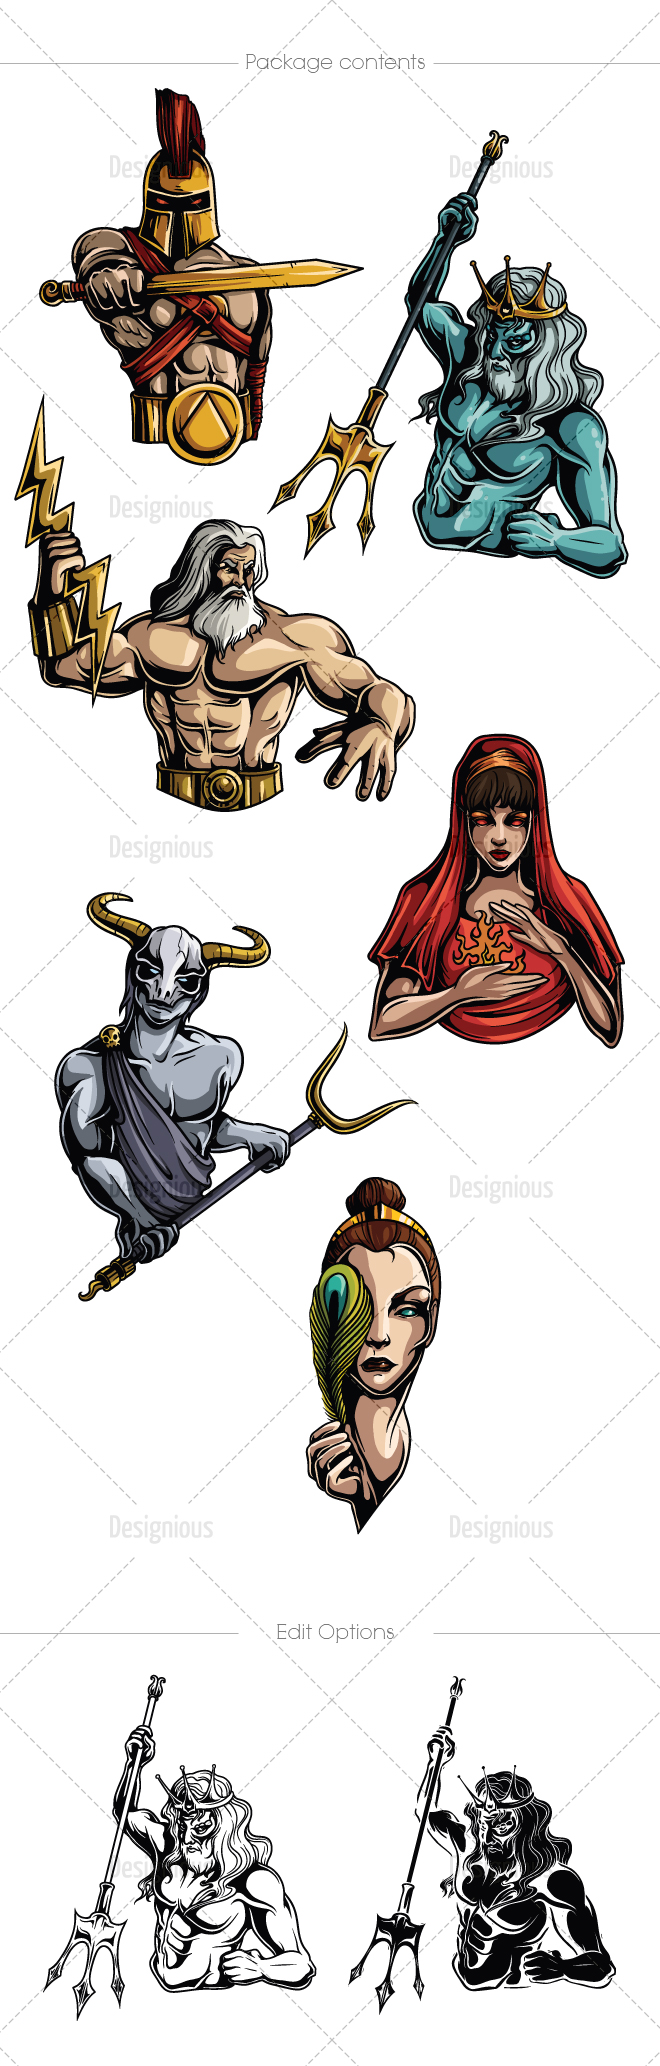 graphic black and white download Mythological olympian gods pack. Greek vector character